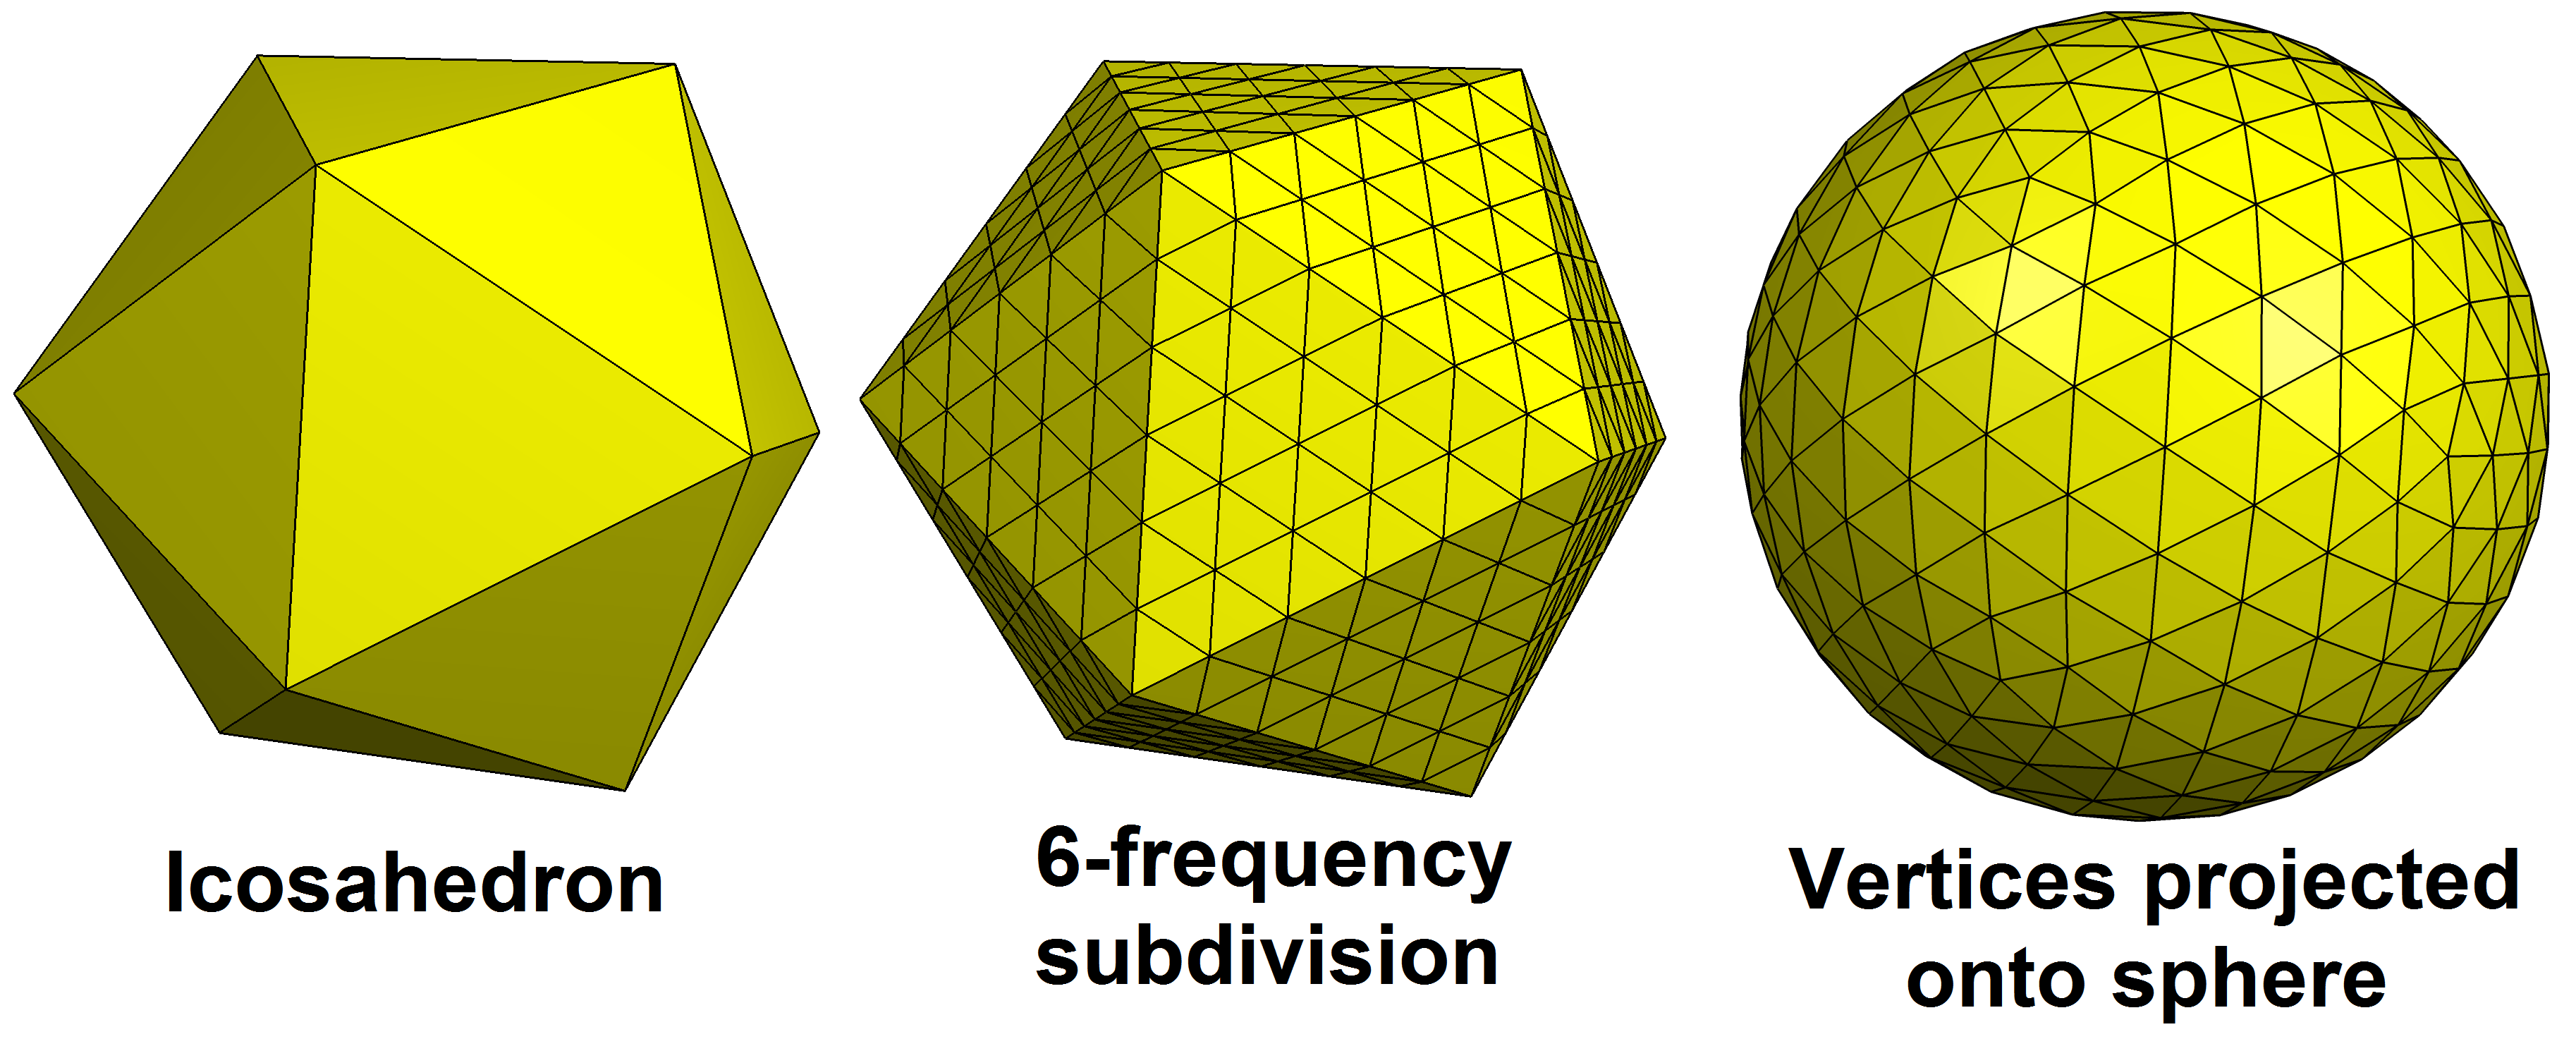 Geodesic_icosahedral_polyhedron_example.png